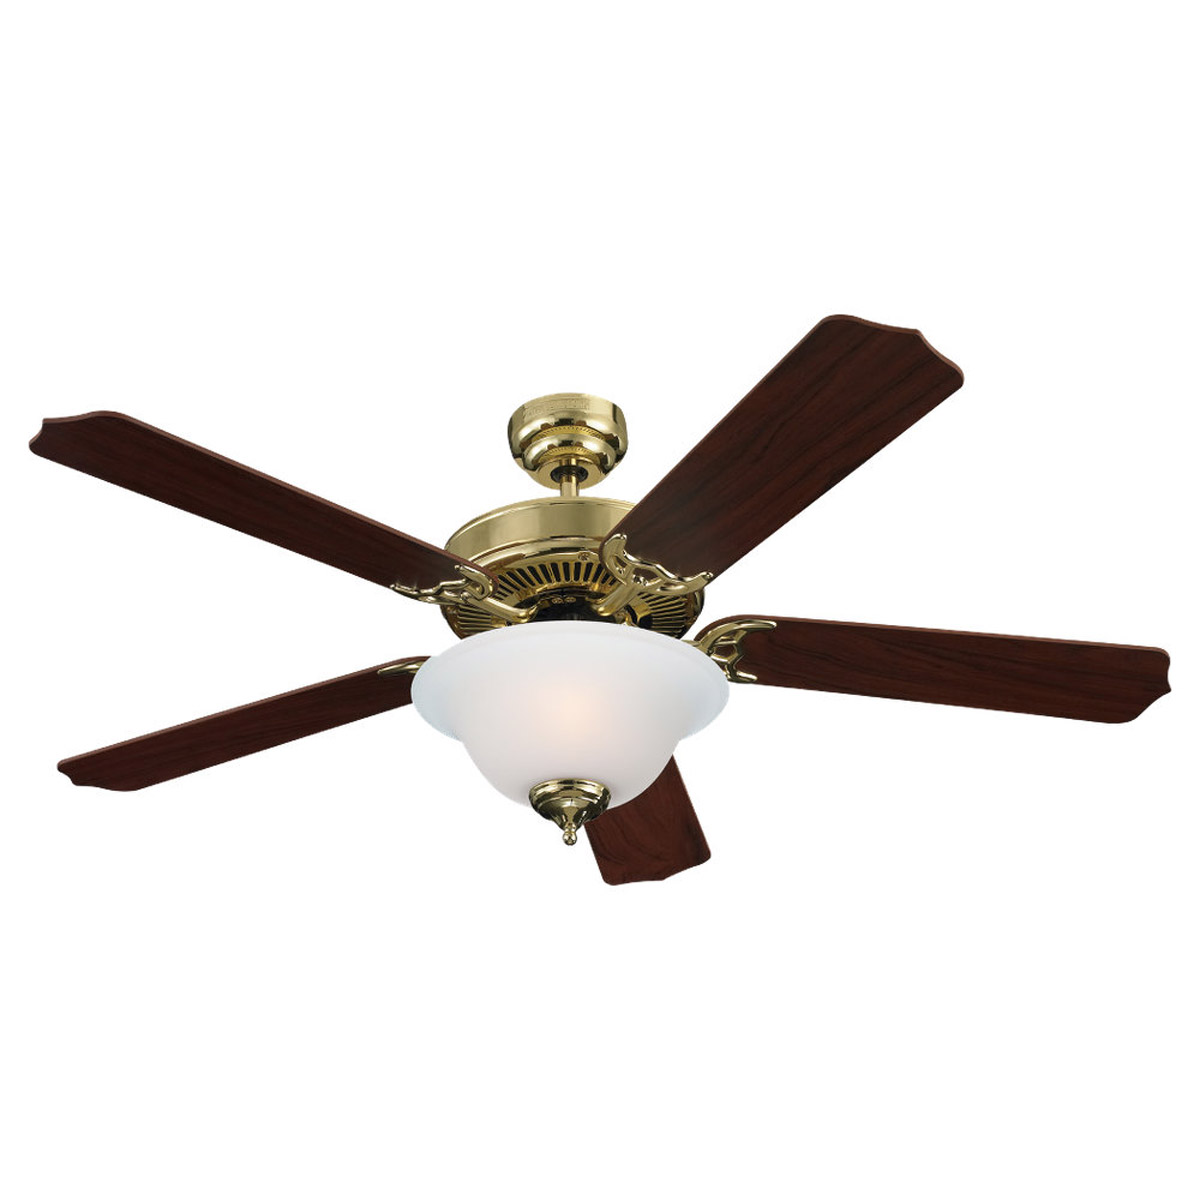 Sea Gull Lighting 2 Light 52in Quality Max Plus Ceiling Fan in Polished Brass 15030BLE-02 photo